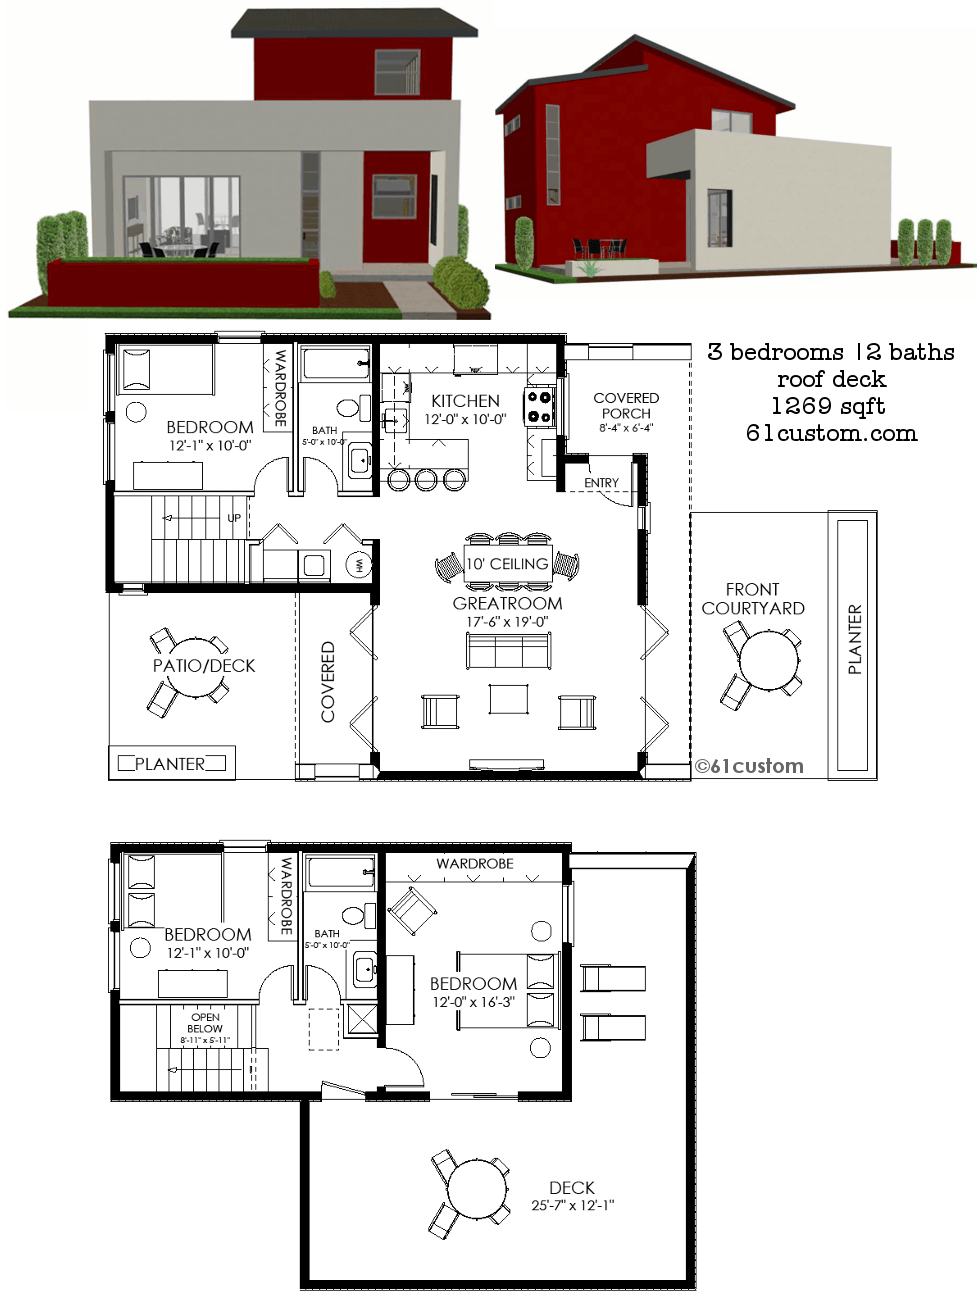 Contemporary small house plan 61custom contemporary Home design plans